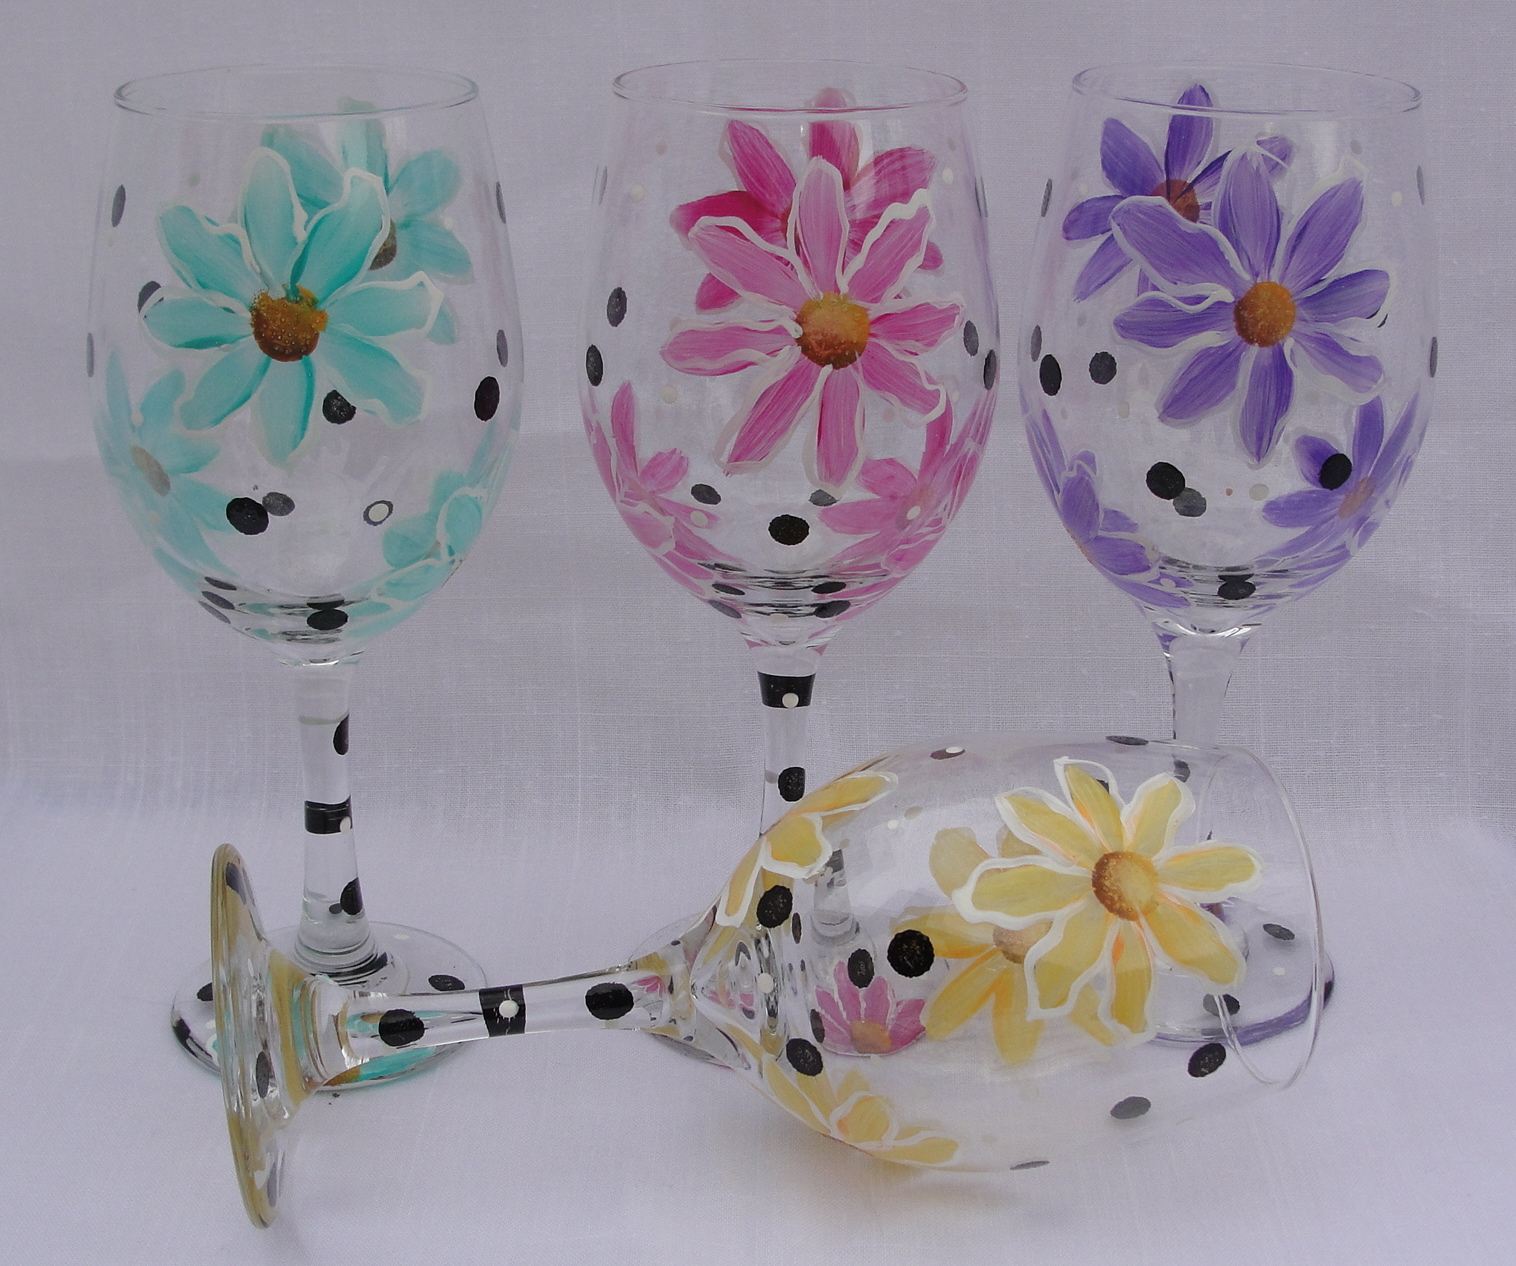 wine glass painting class bisque it a fun art studio - Wine Glass Design Ideas